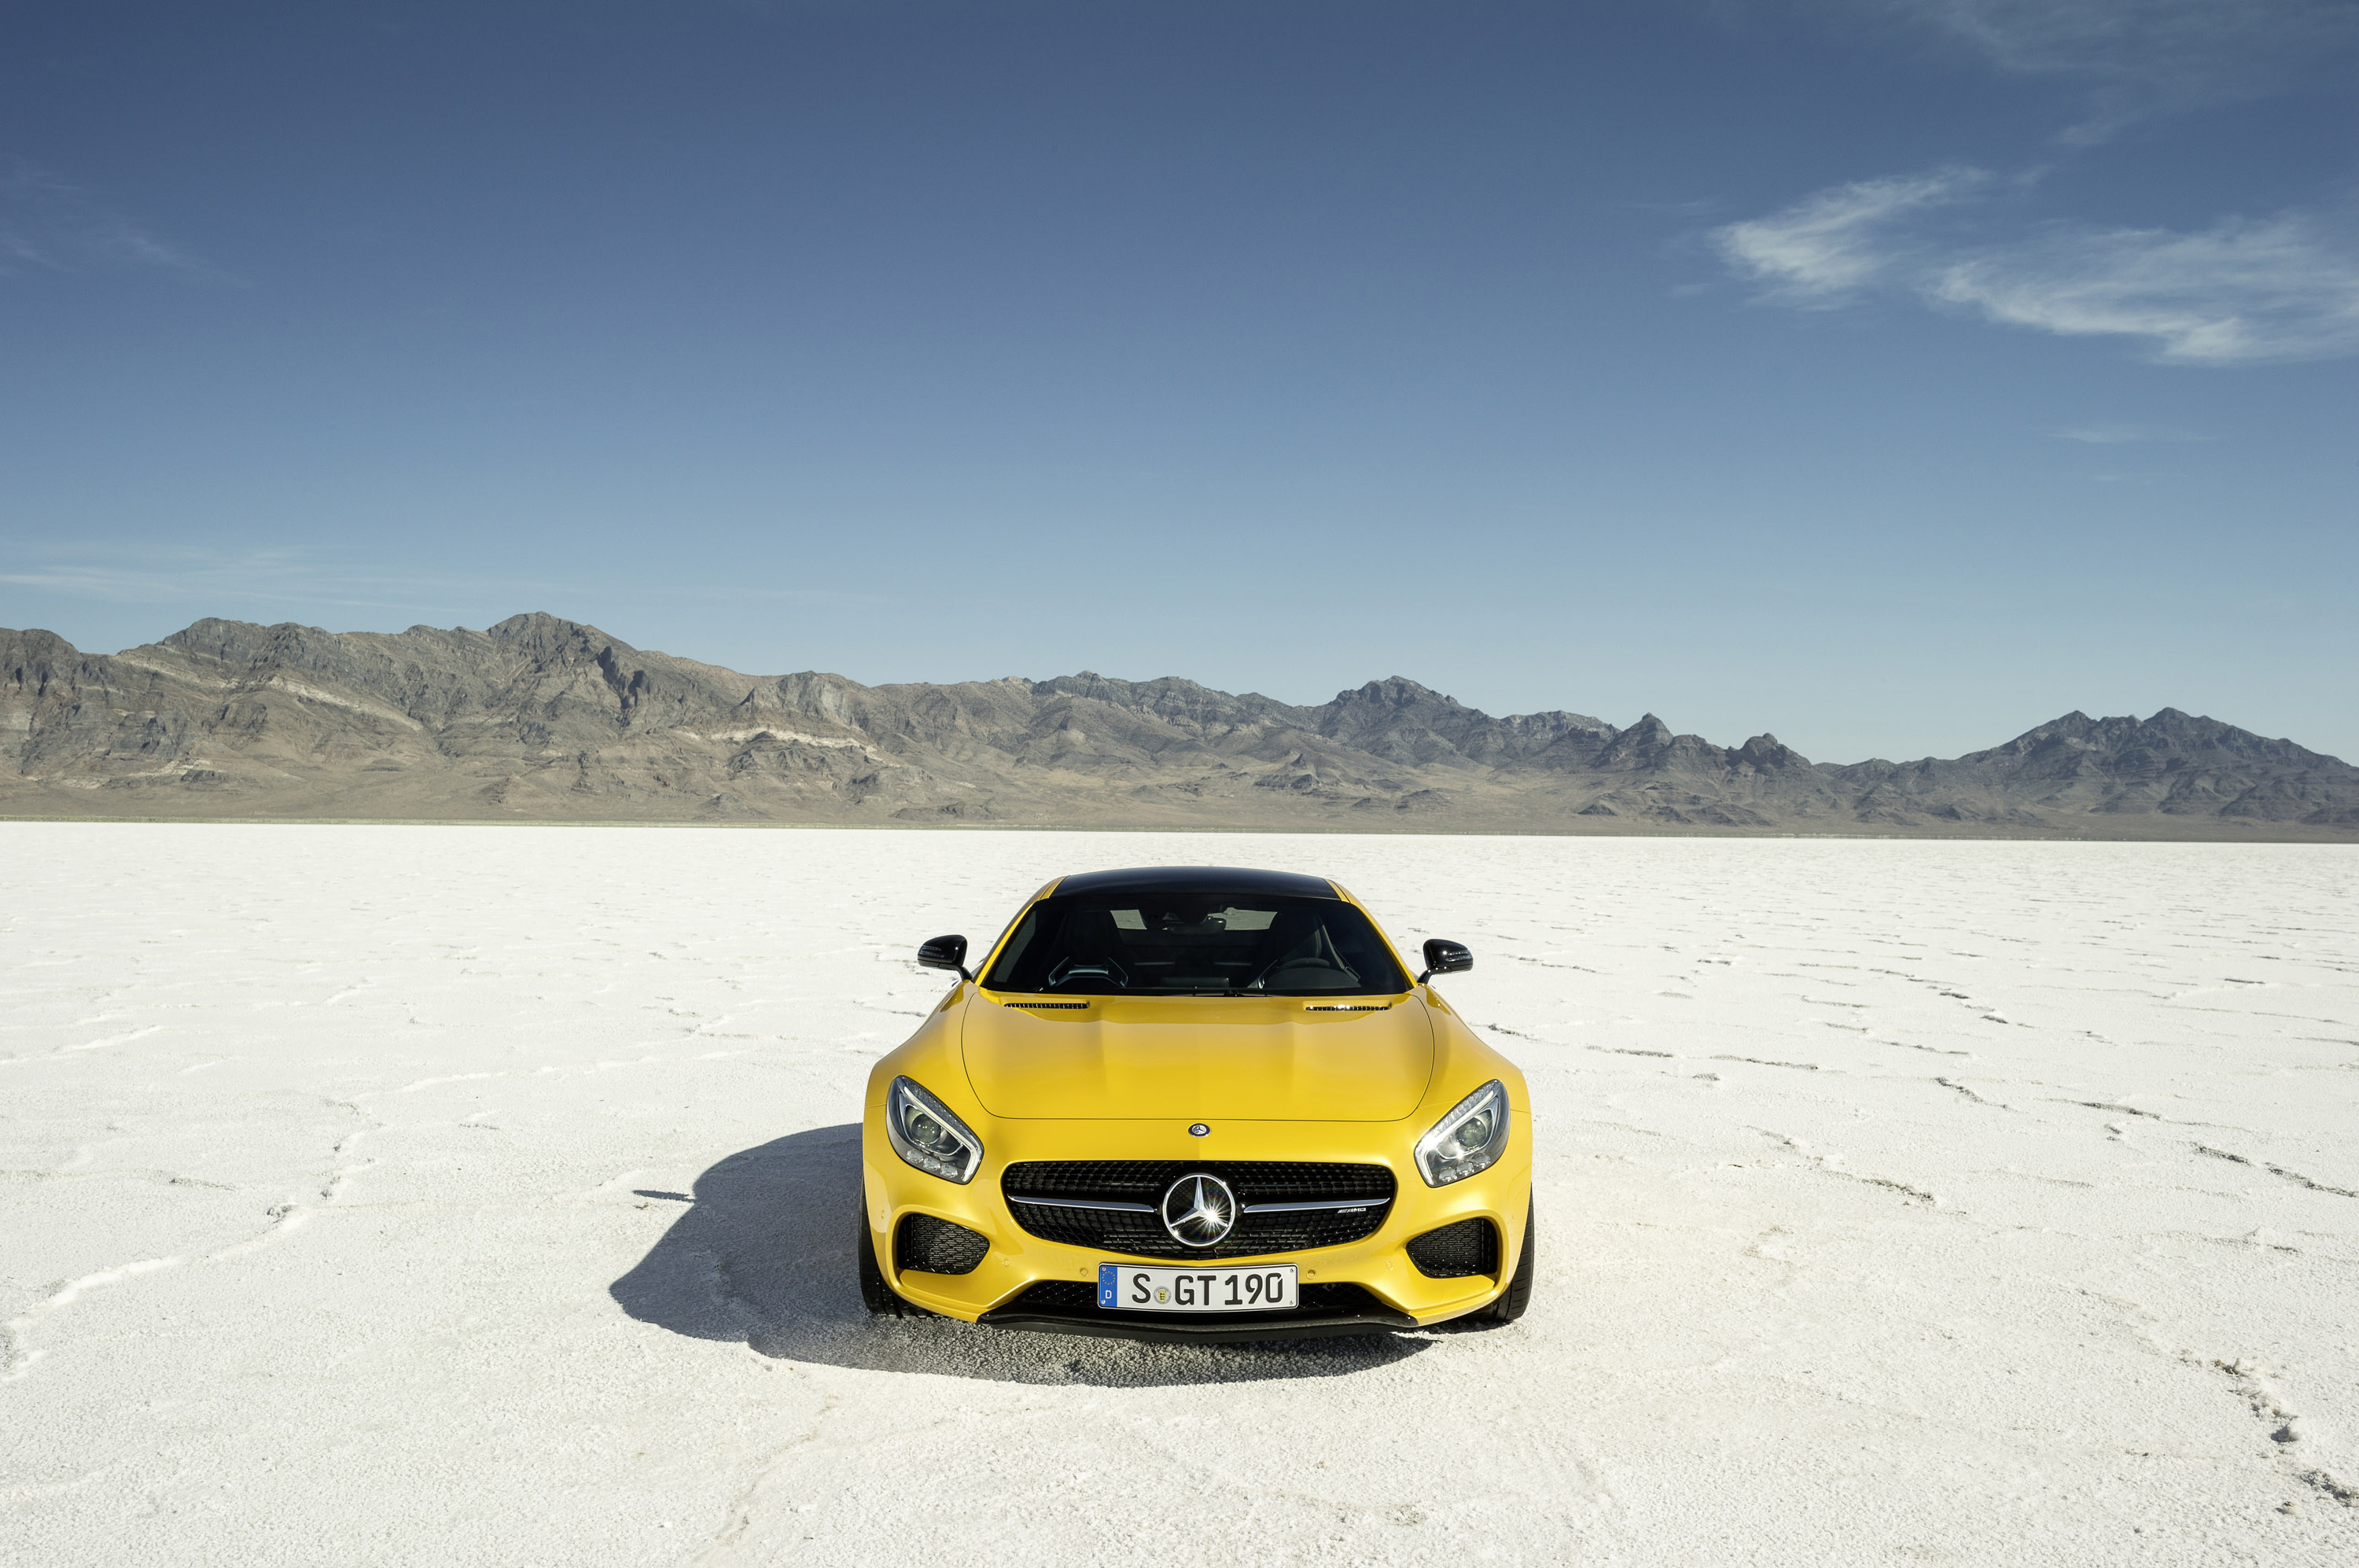 Mercedes AMG GT Picture 73 of 82, 2015